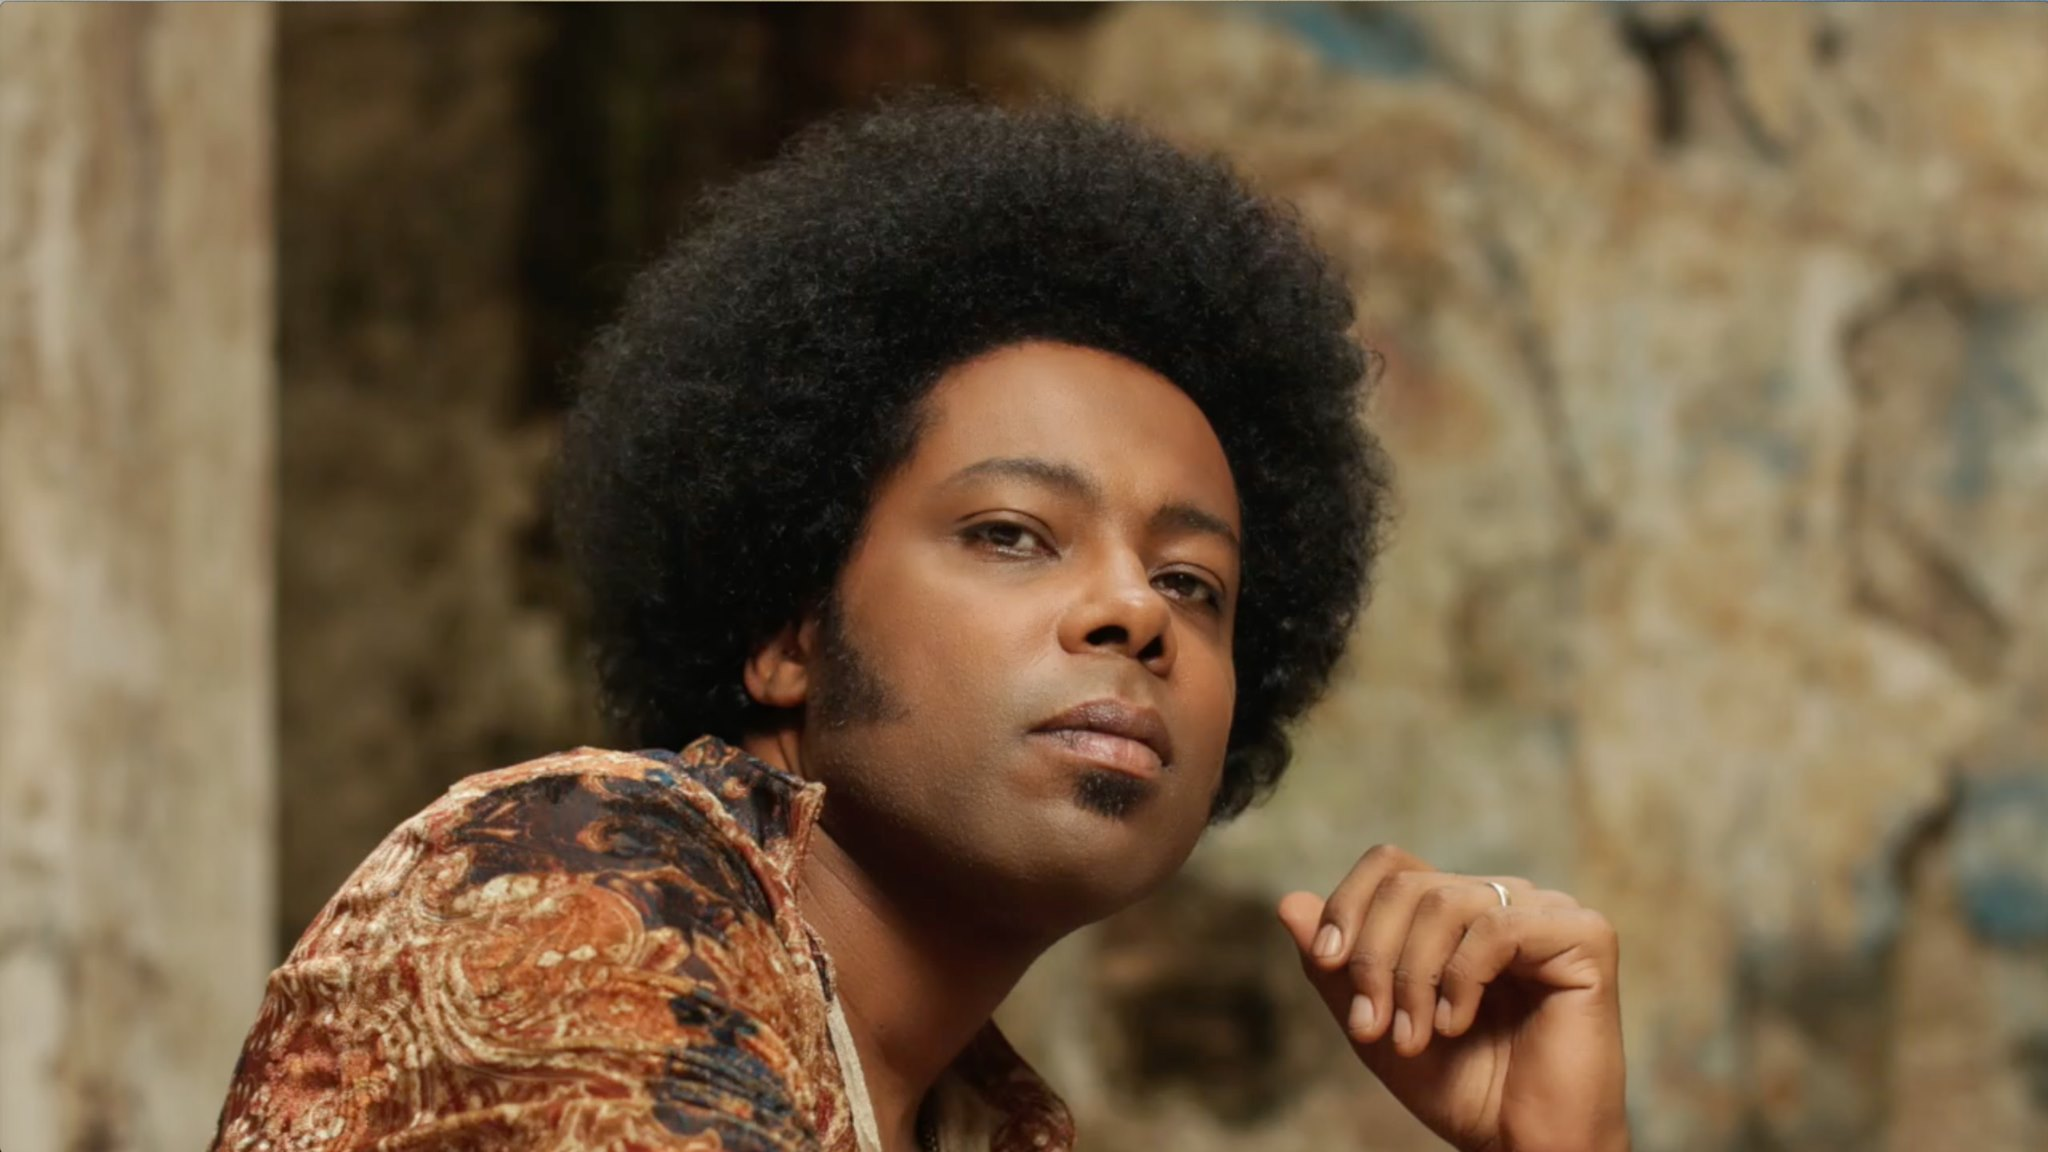 Juno award winning Alex Cuba brings his unique musical stylings to close out the Heatwave festival